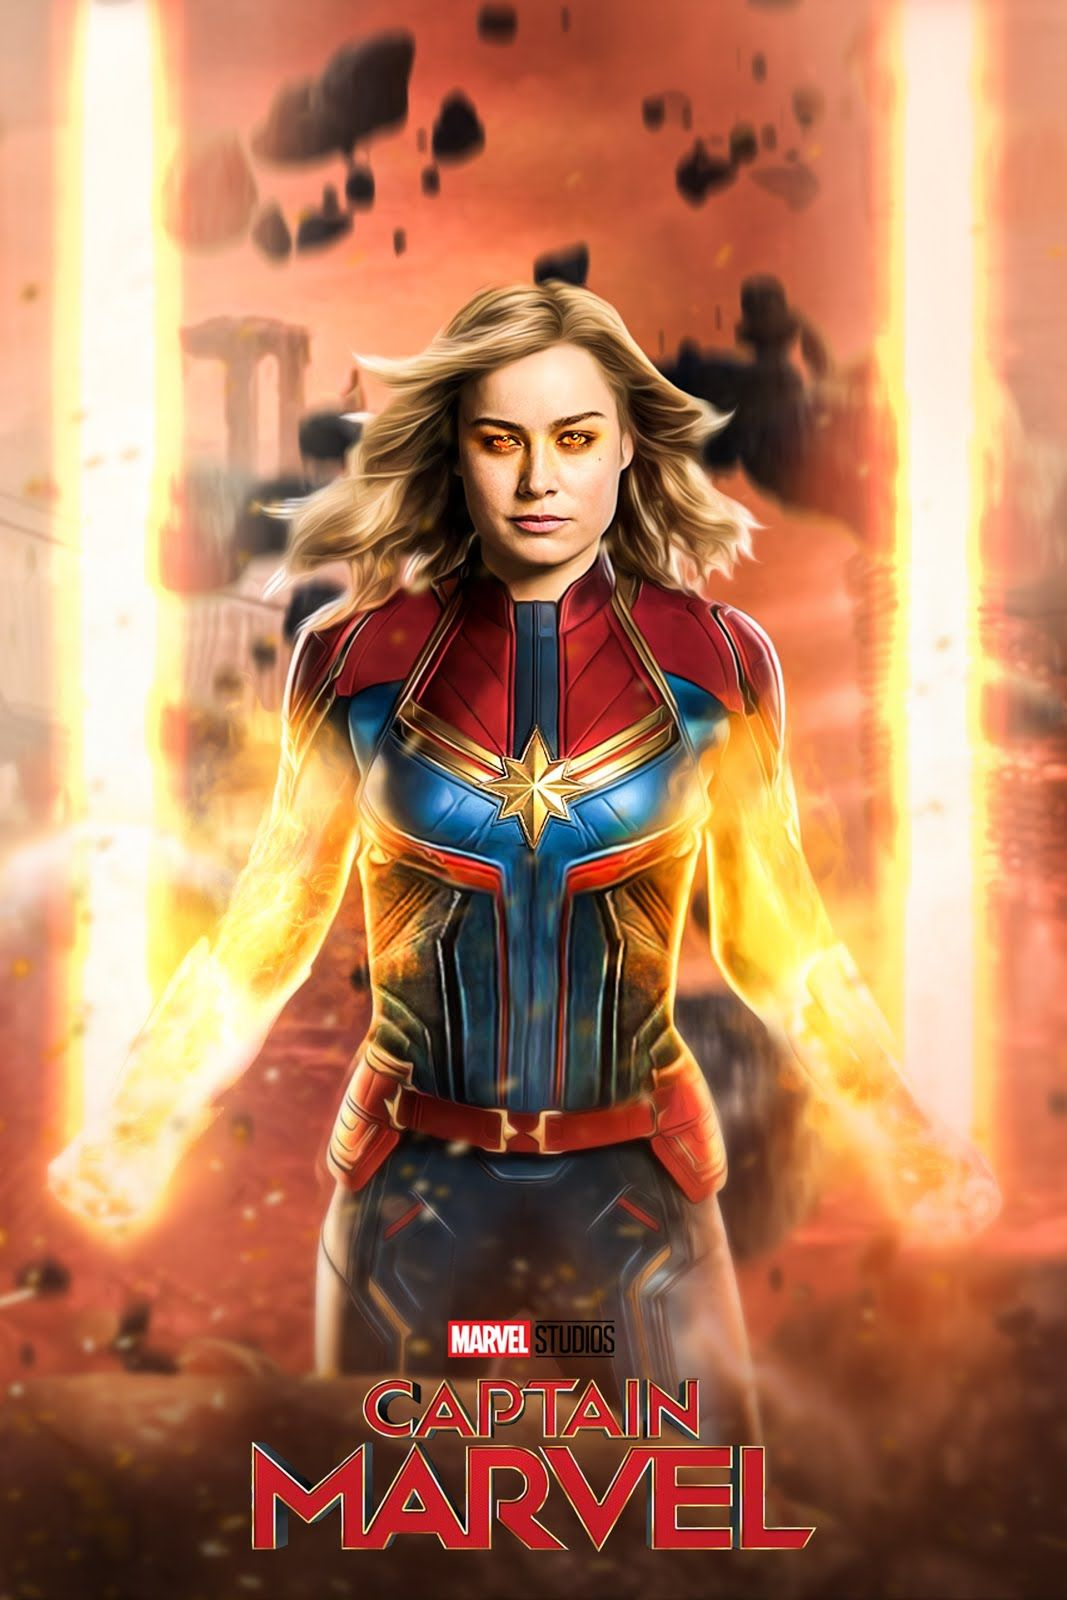 1125x2436 Captain Marvel Movie 4k 2019 Iphone Xs Iphone 10 Iphone X Hd 4k Wallpapers Images Backgrounds Phot Captain Marvel Best Movie Posters Marvel Movies